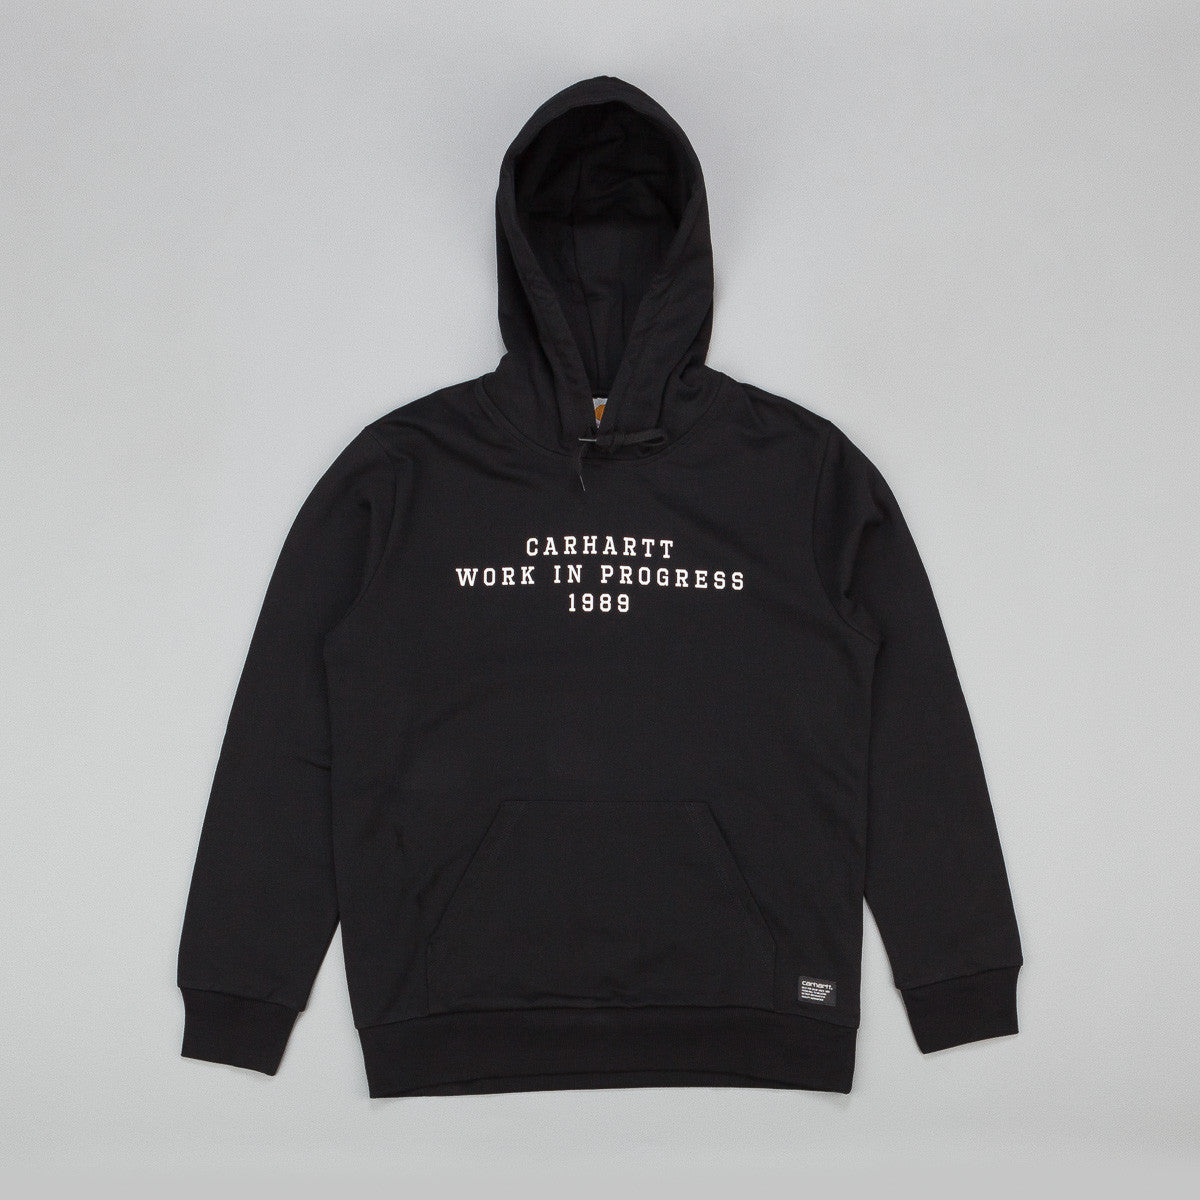 Carhartt Imprint Hooded Sweatshirt - Black / White